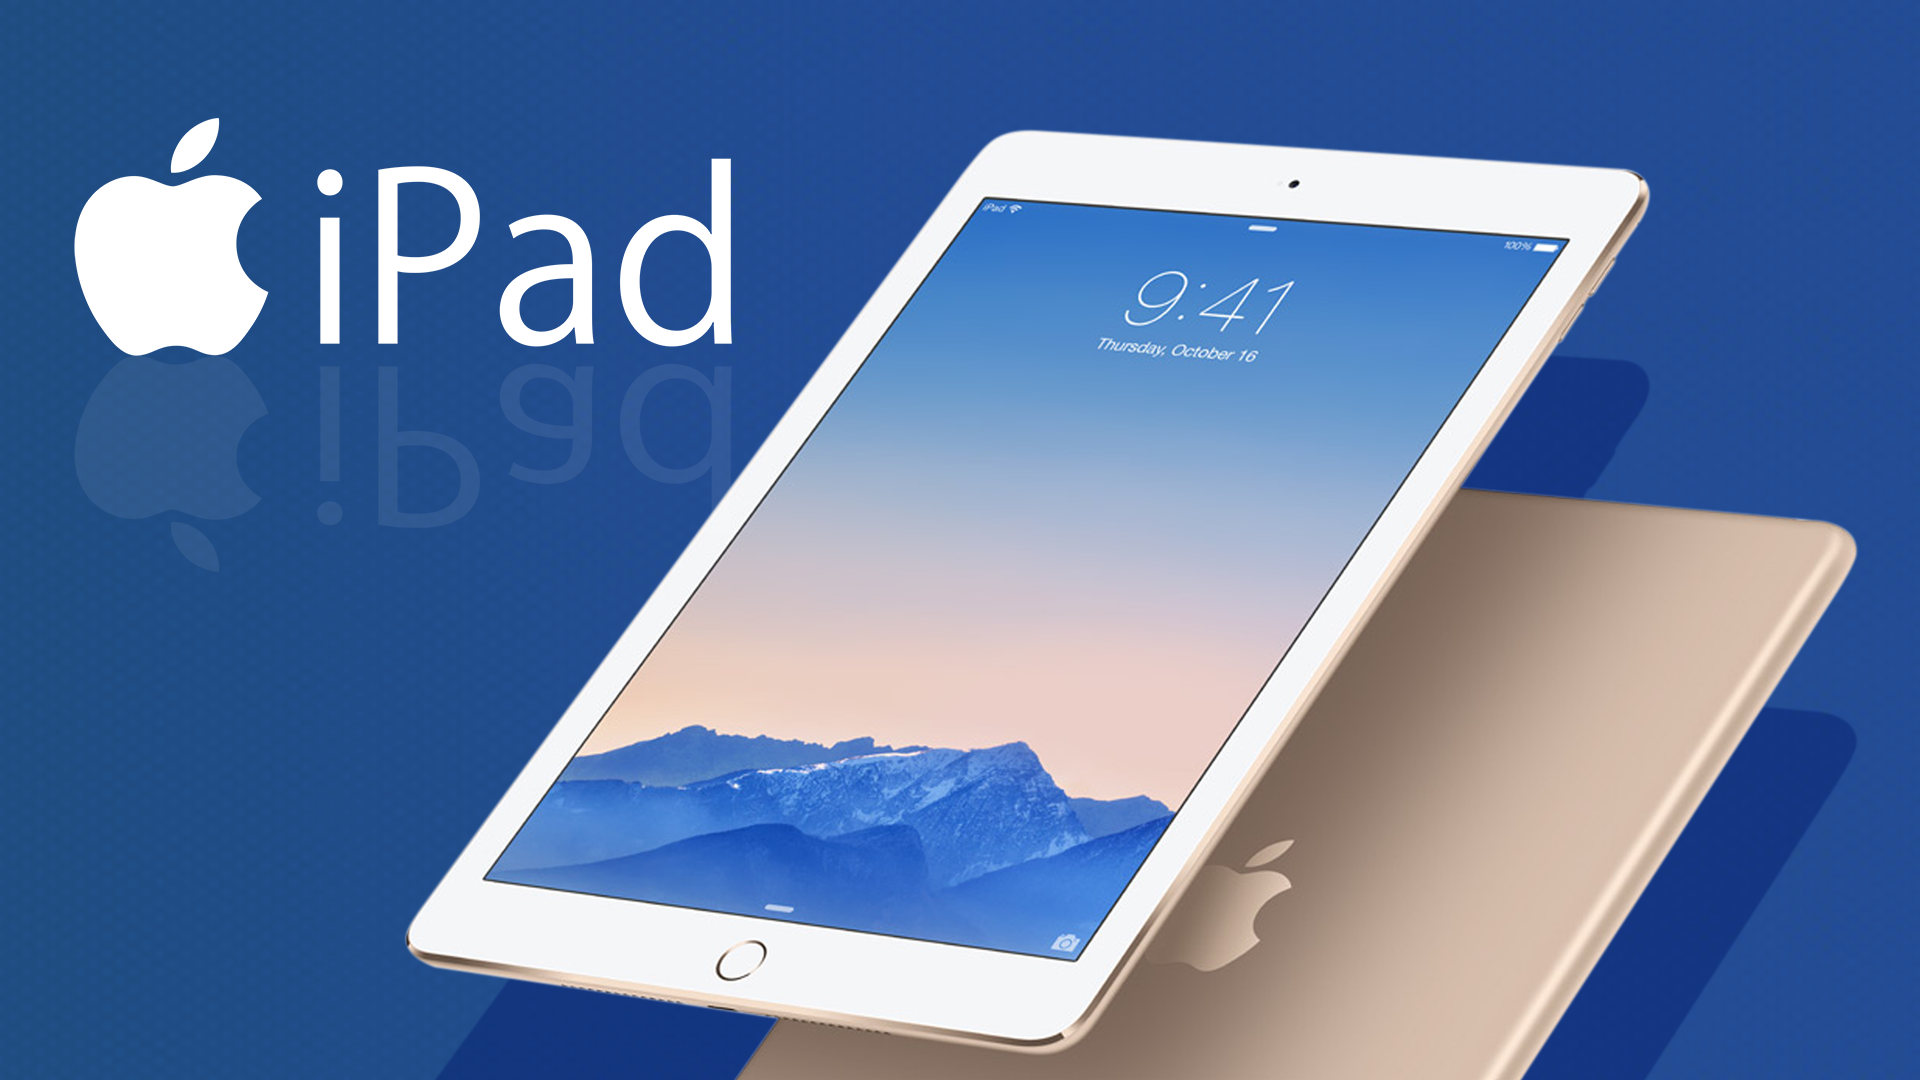 Apple iPad's sales have been flat